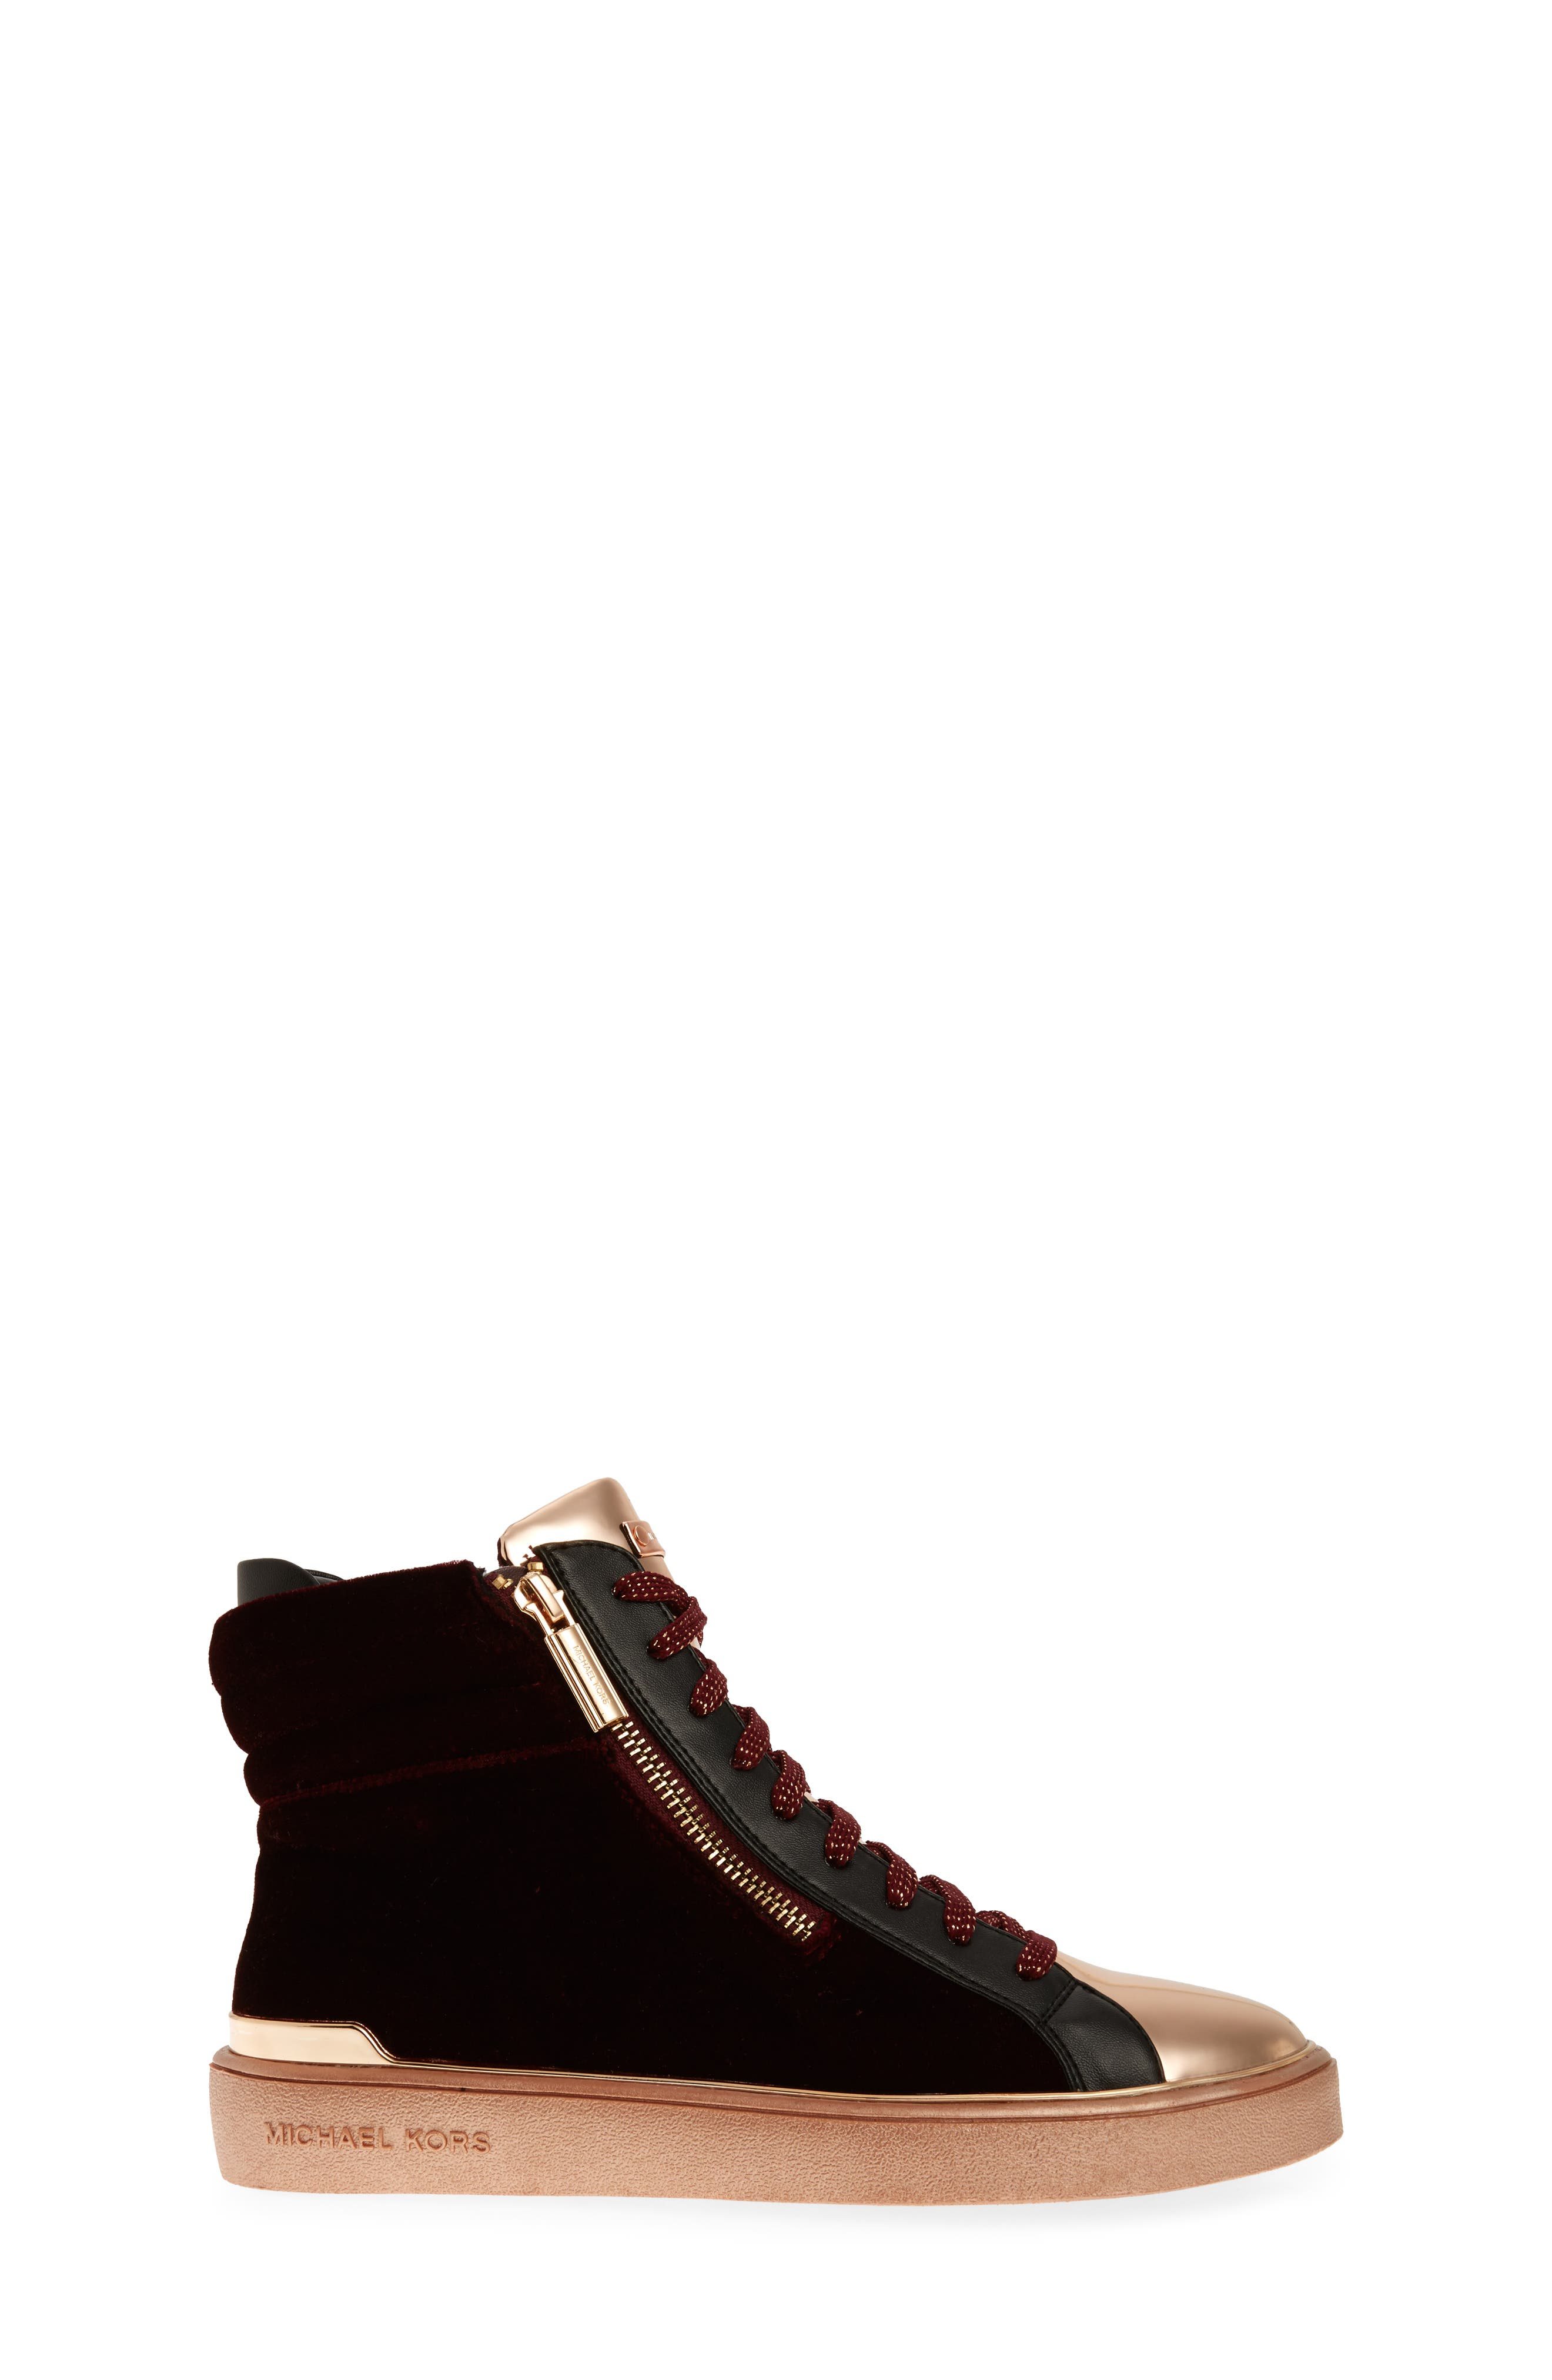 Ivy Blue High Top Sneaker,                             Alternate thumbnail 6, color,